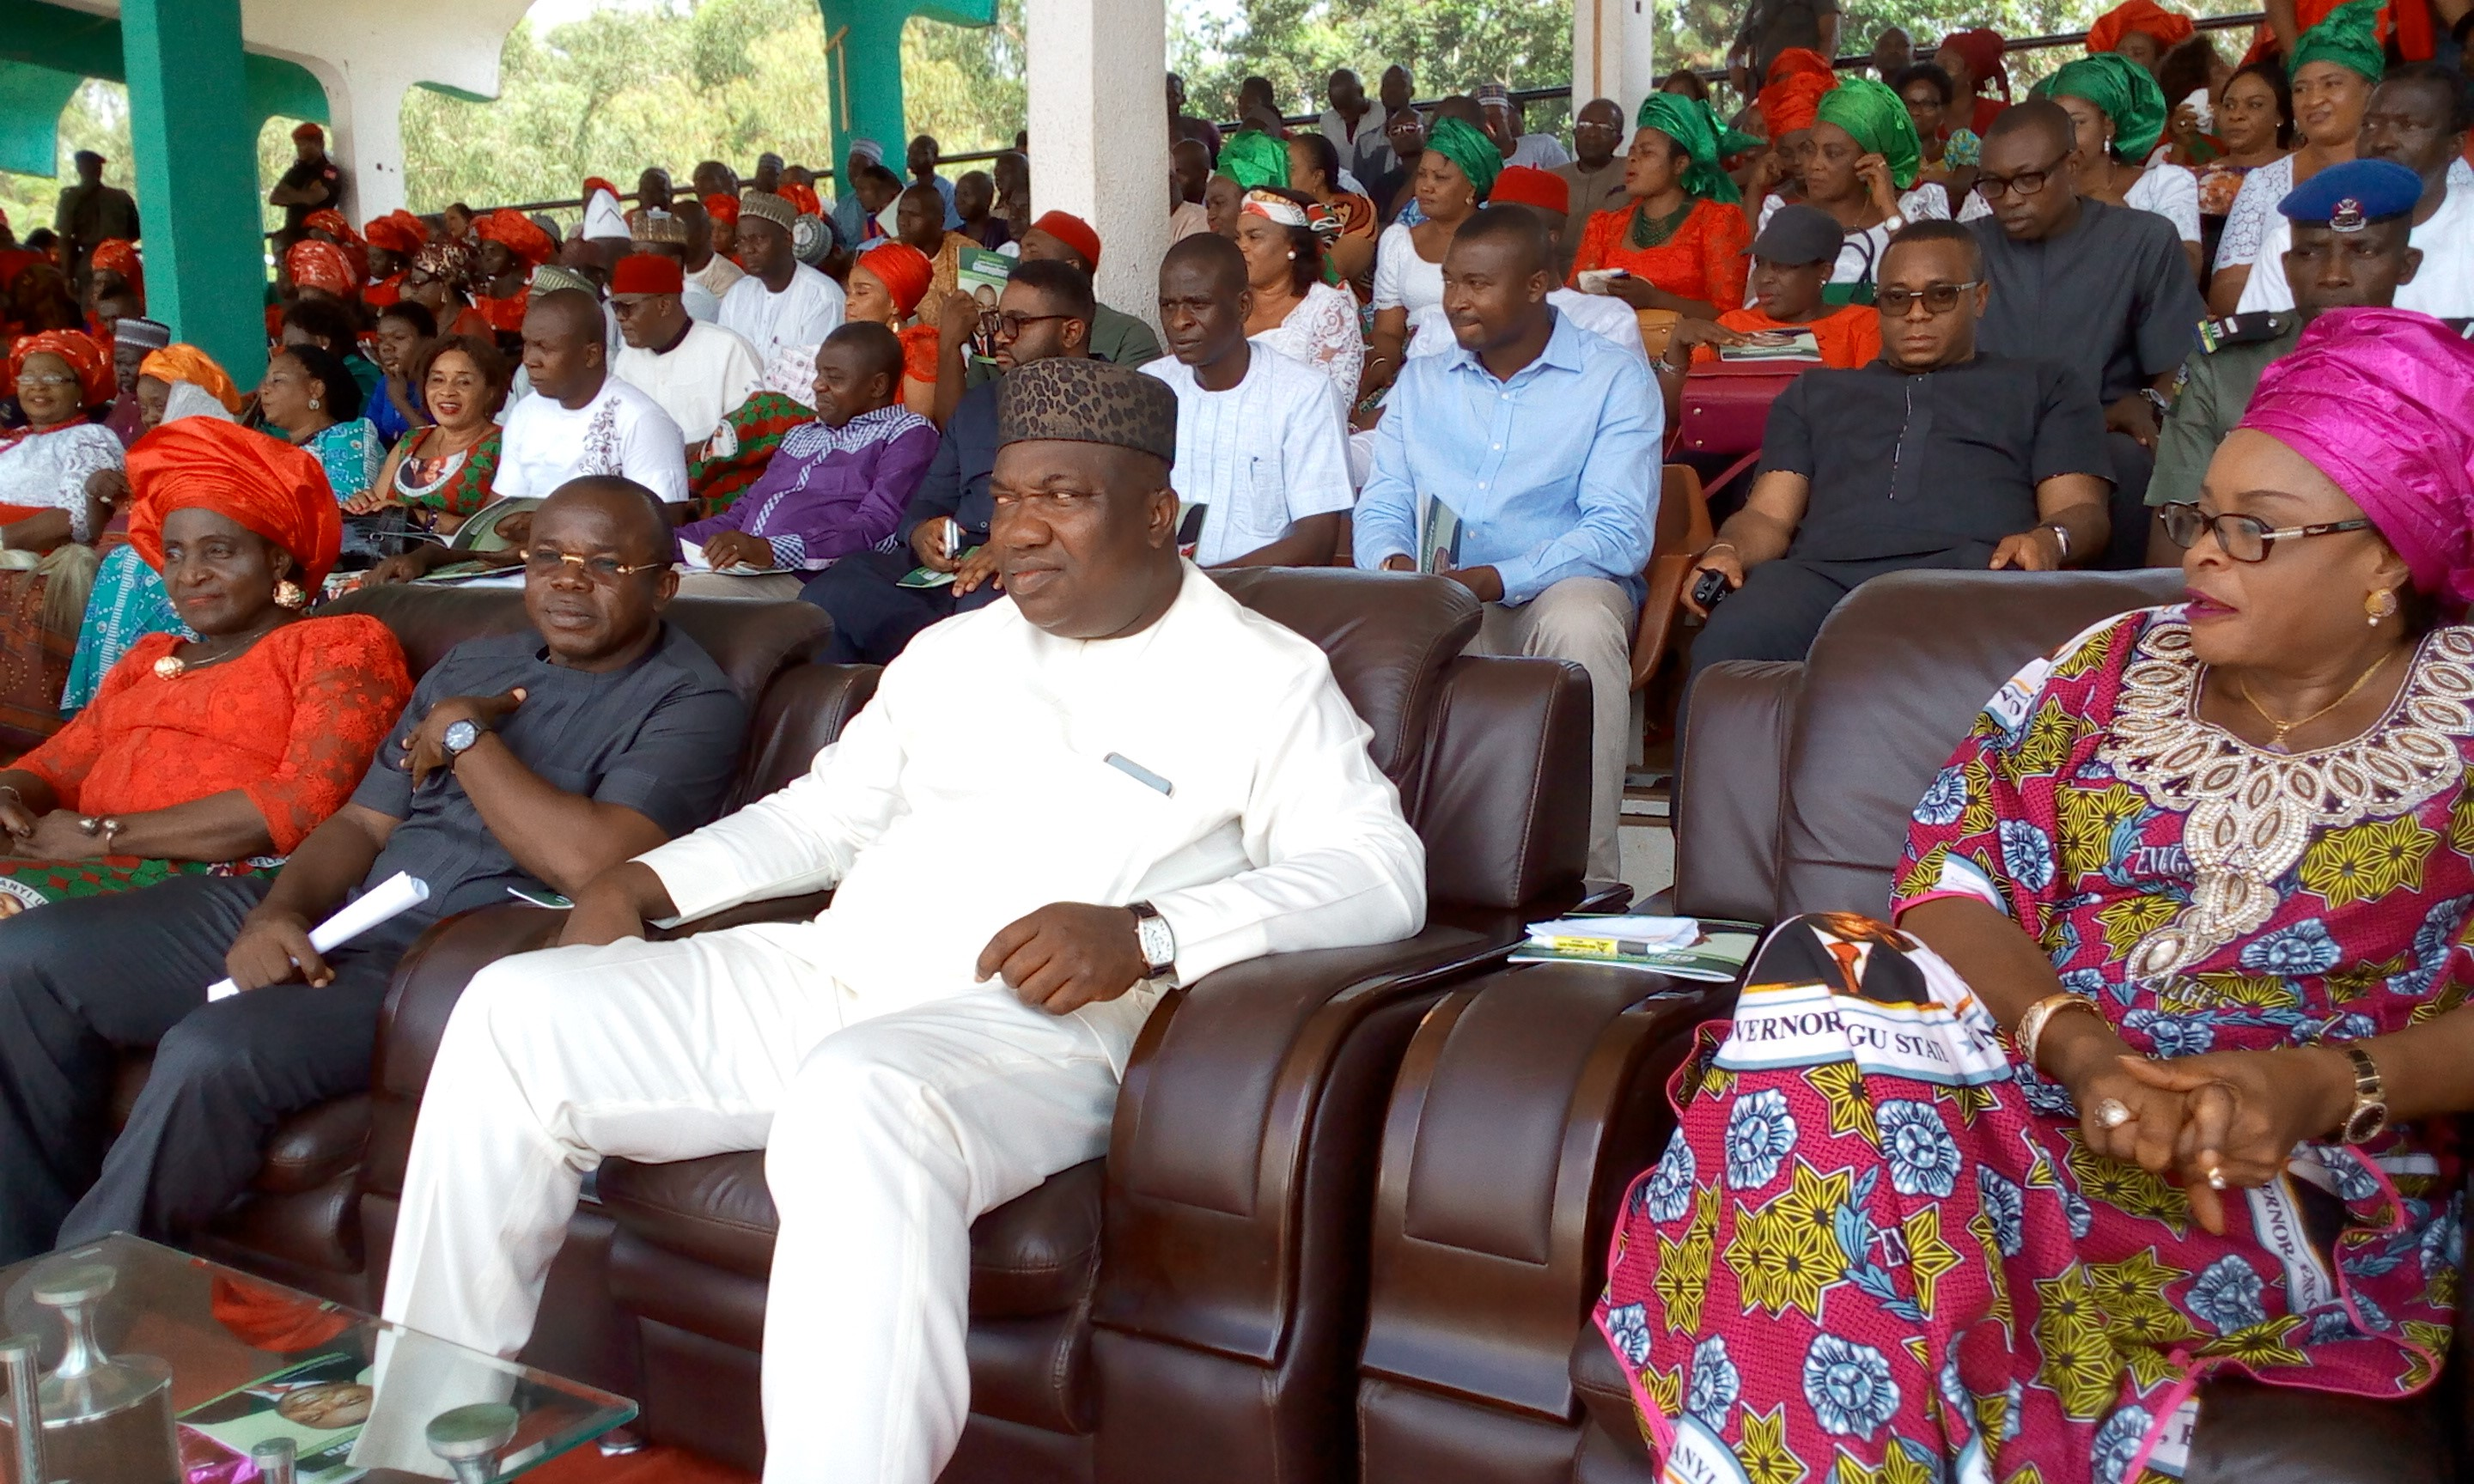 gov-ifeanyi-ugwuanyi-of-enugu-state-middle-with-his-deputy-mrs-cecilia